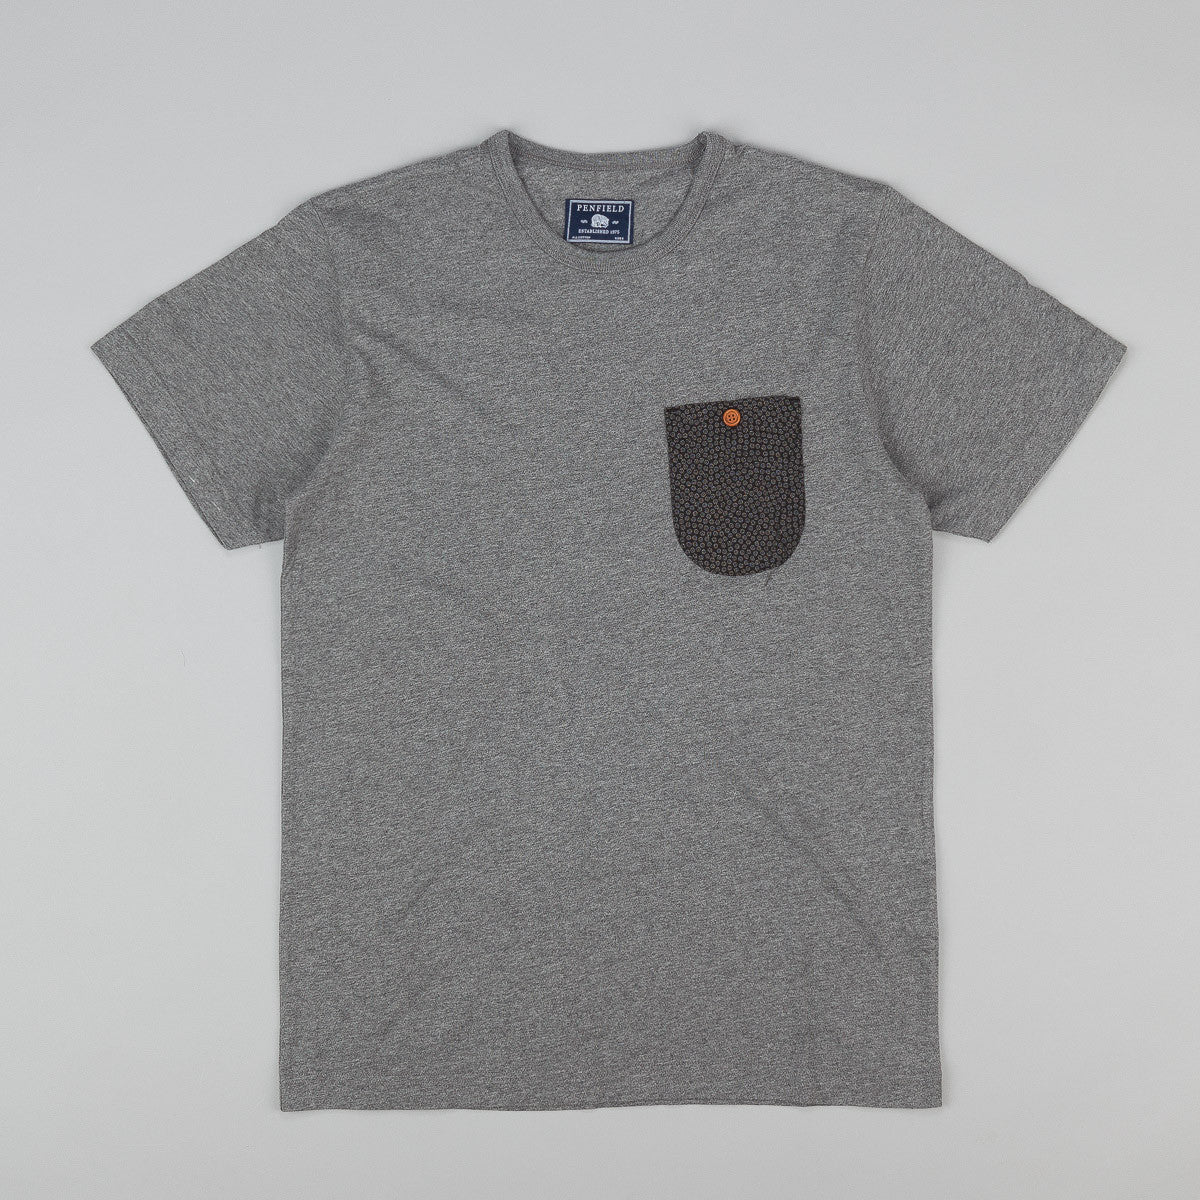 Penfield Winthorp T-Shirt